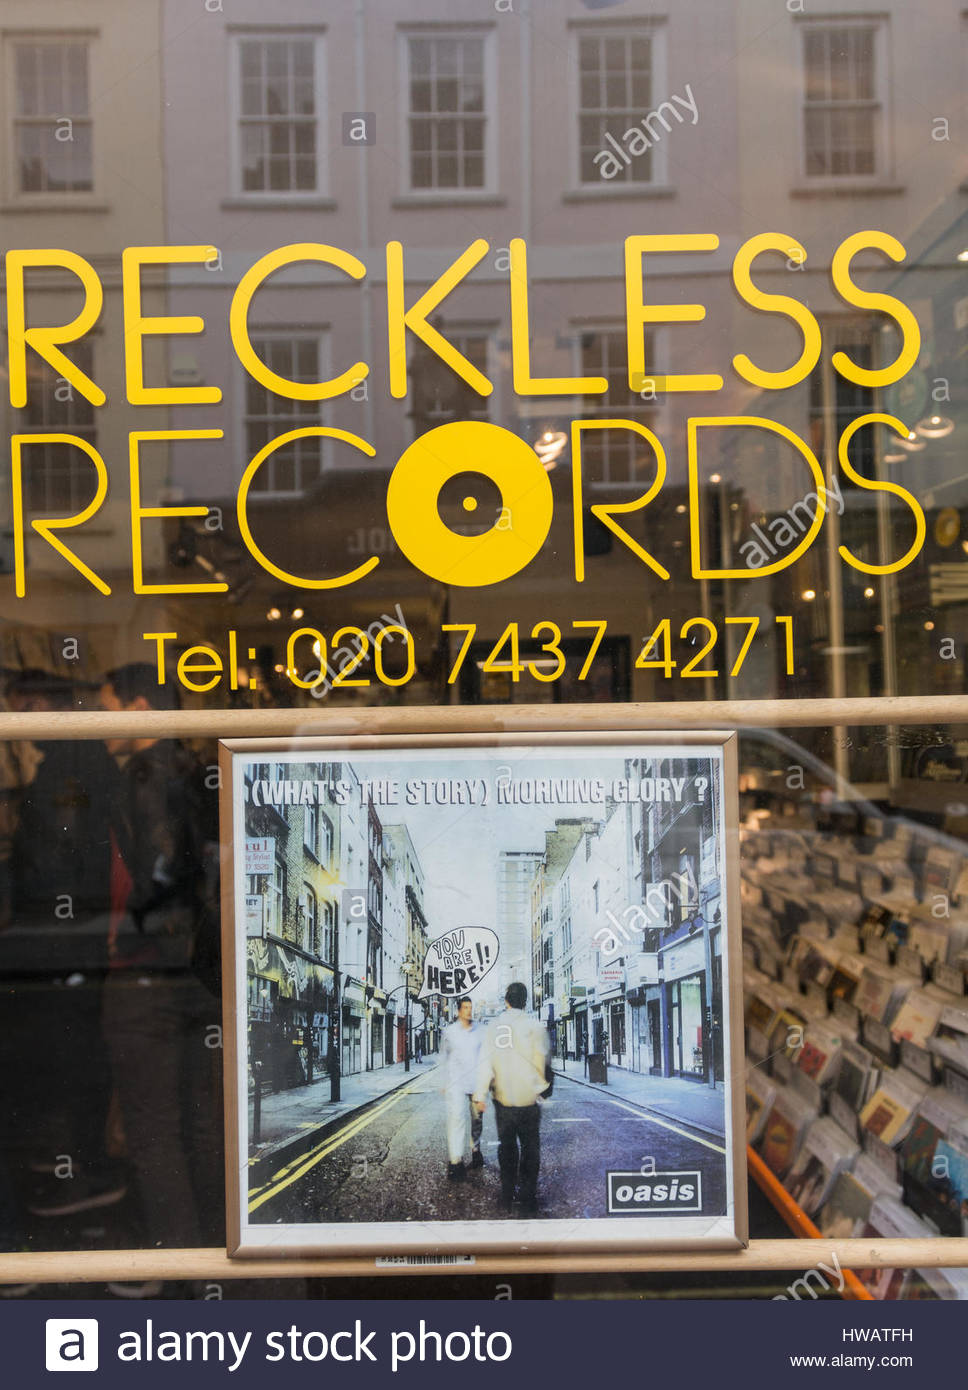 Oasis' What's the Story Morning Glory album cover in the shop window of Reckless Records in Soho, London, - Stock Image